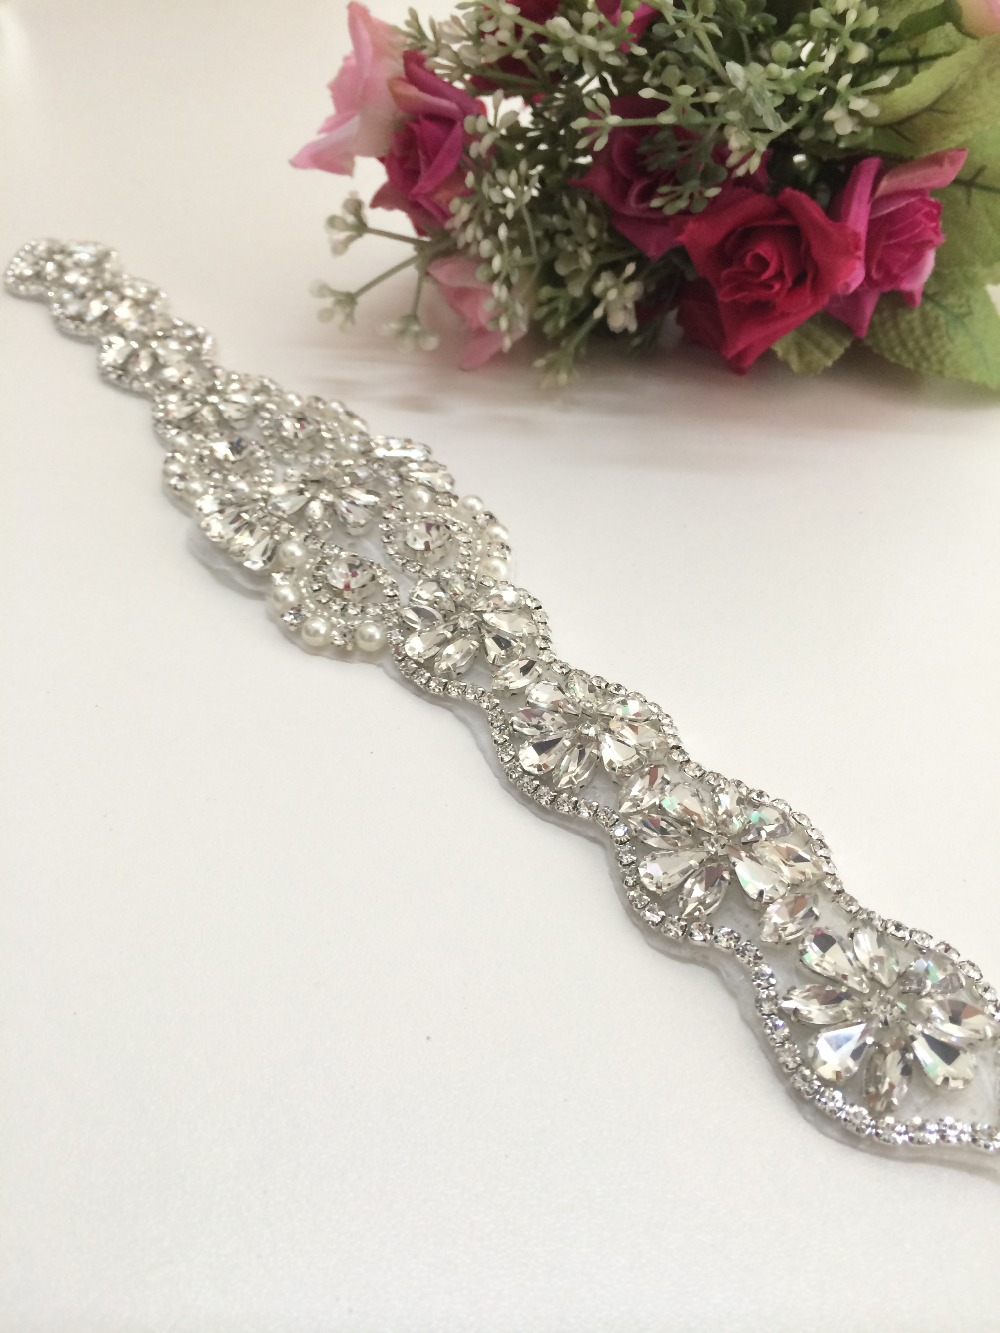 Rhinestone applique bridal accessories crystal trim for Wedding dress sash with rhinestones